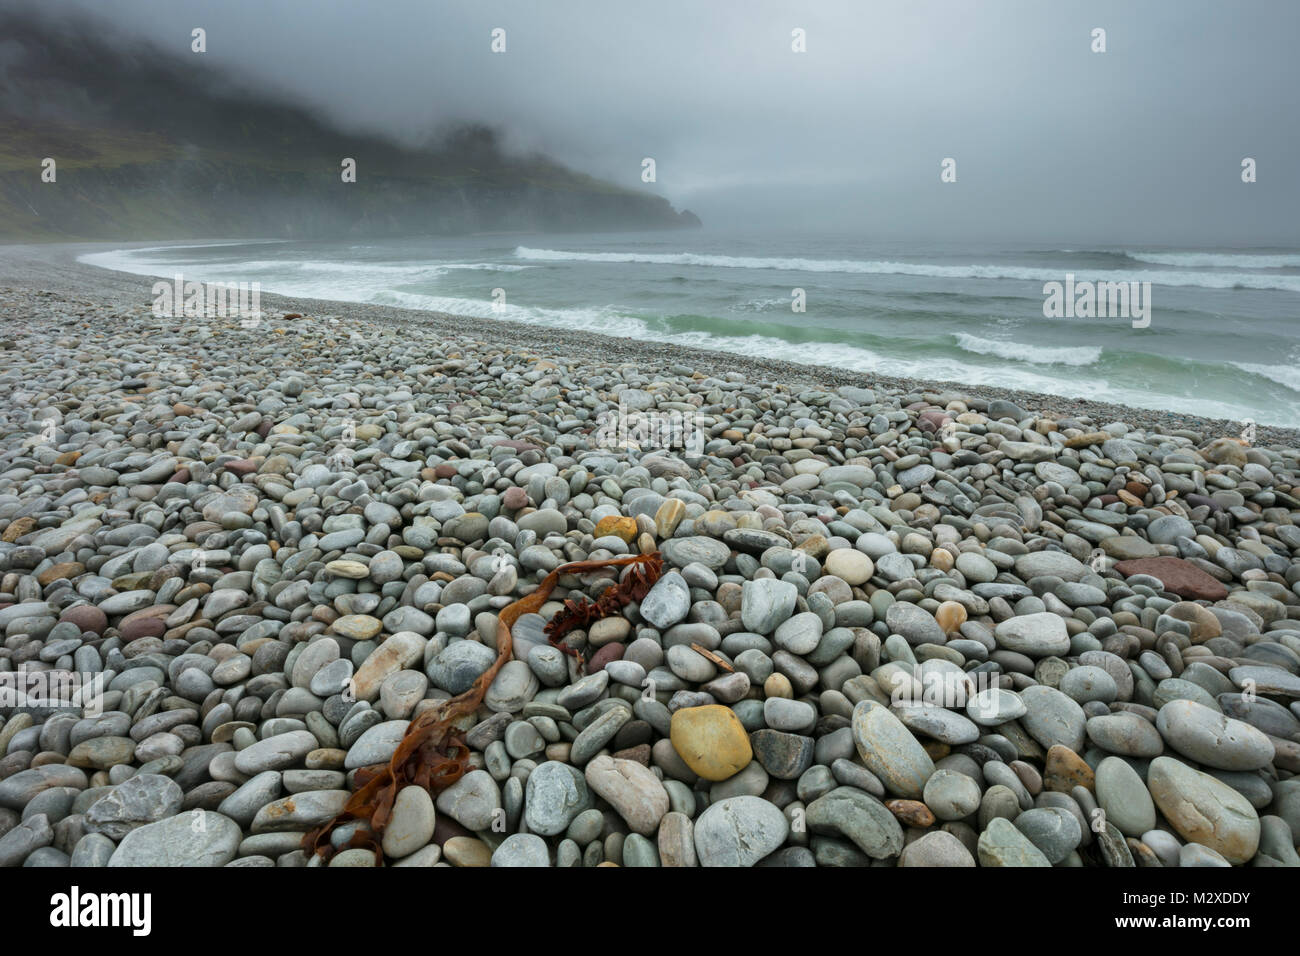 Sea fog shrouds Dookinelly beach, Achill Island, County Mayo, Ireland. - Stock Image